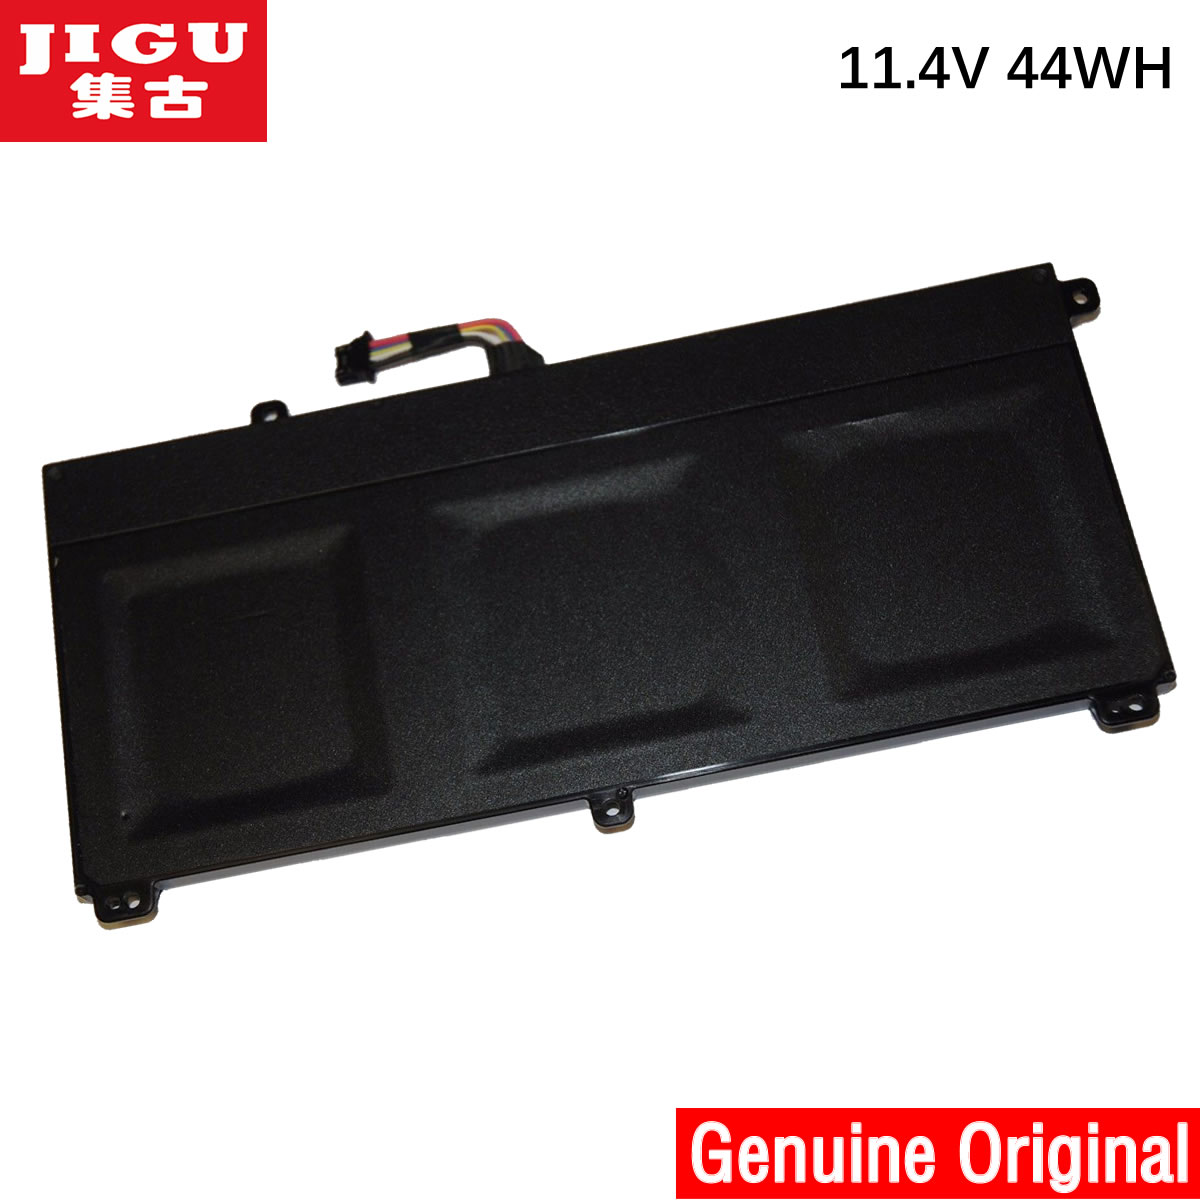 JIGU ORIGNAL laptop battery FOR LENOVO ThinkPad W540 W541 W550s L440 L540 P50S T440p T540P T550 T550S T560 jigu 20v 8 5a fankou laptop charger ac adapter power for lenovo legion y720 for thinkpad p50 p70 t440p t540 t540p w540 w541